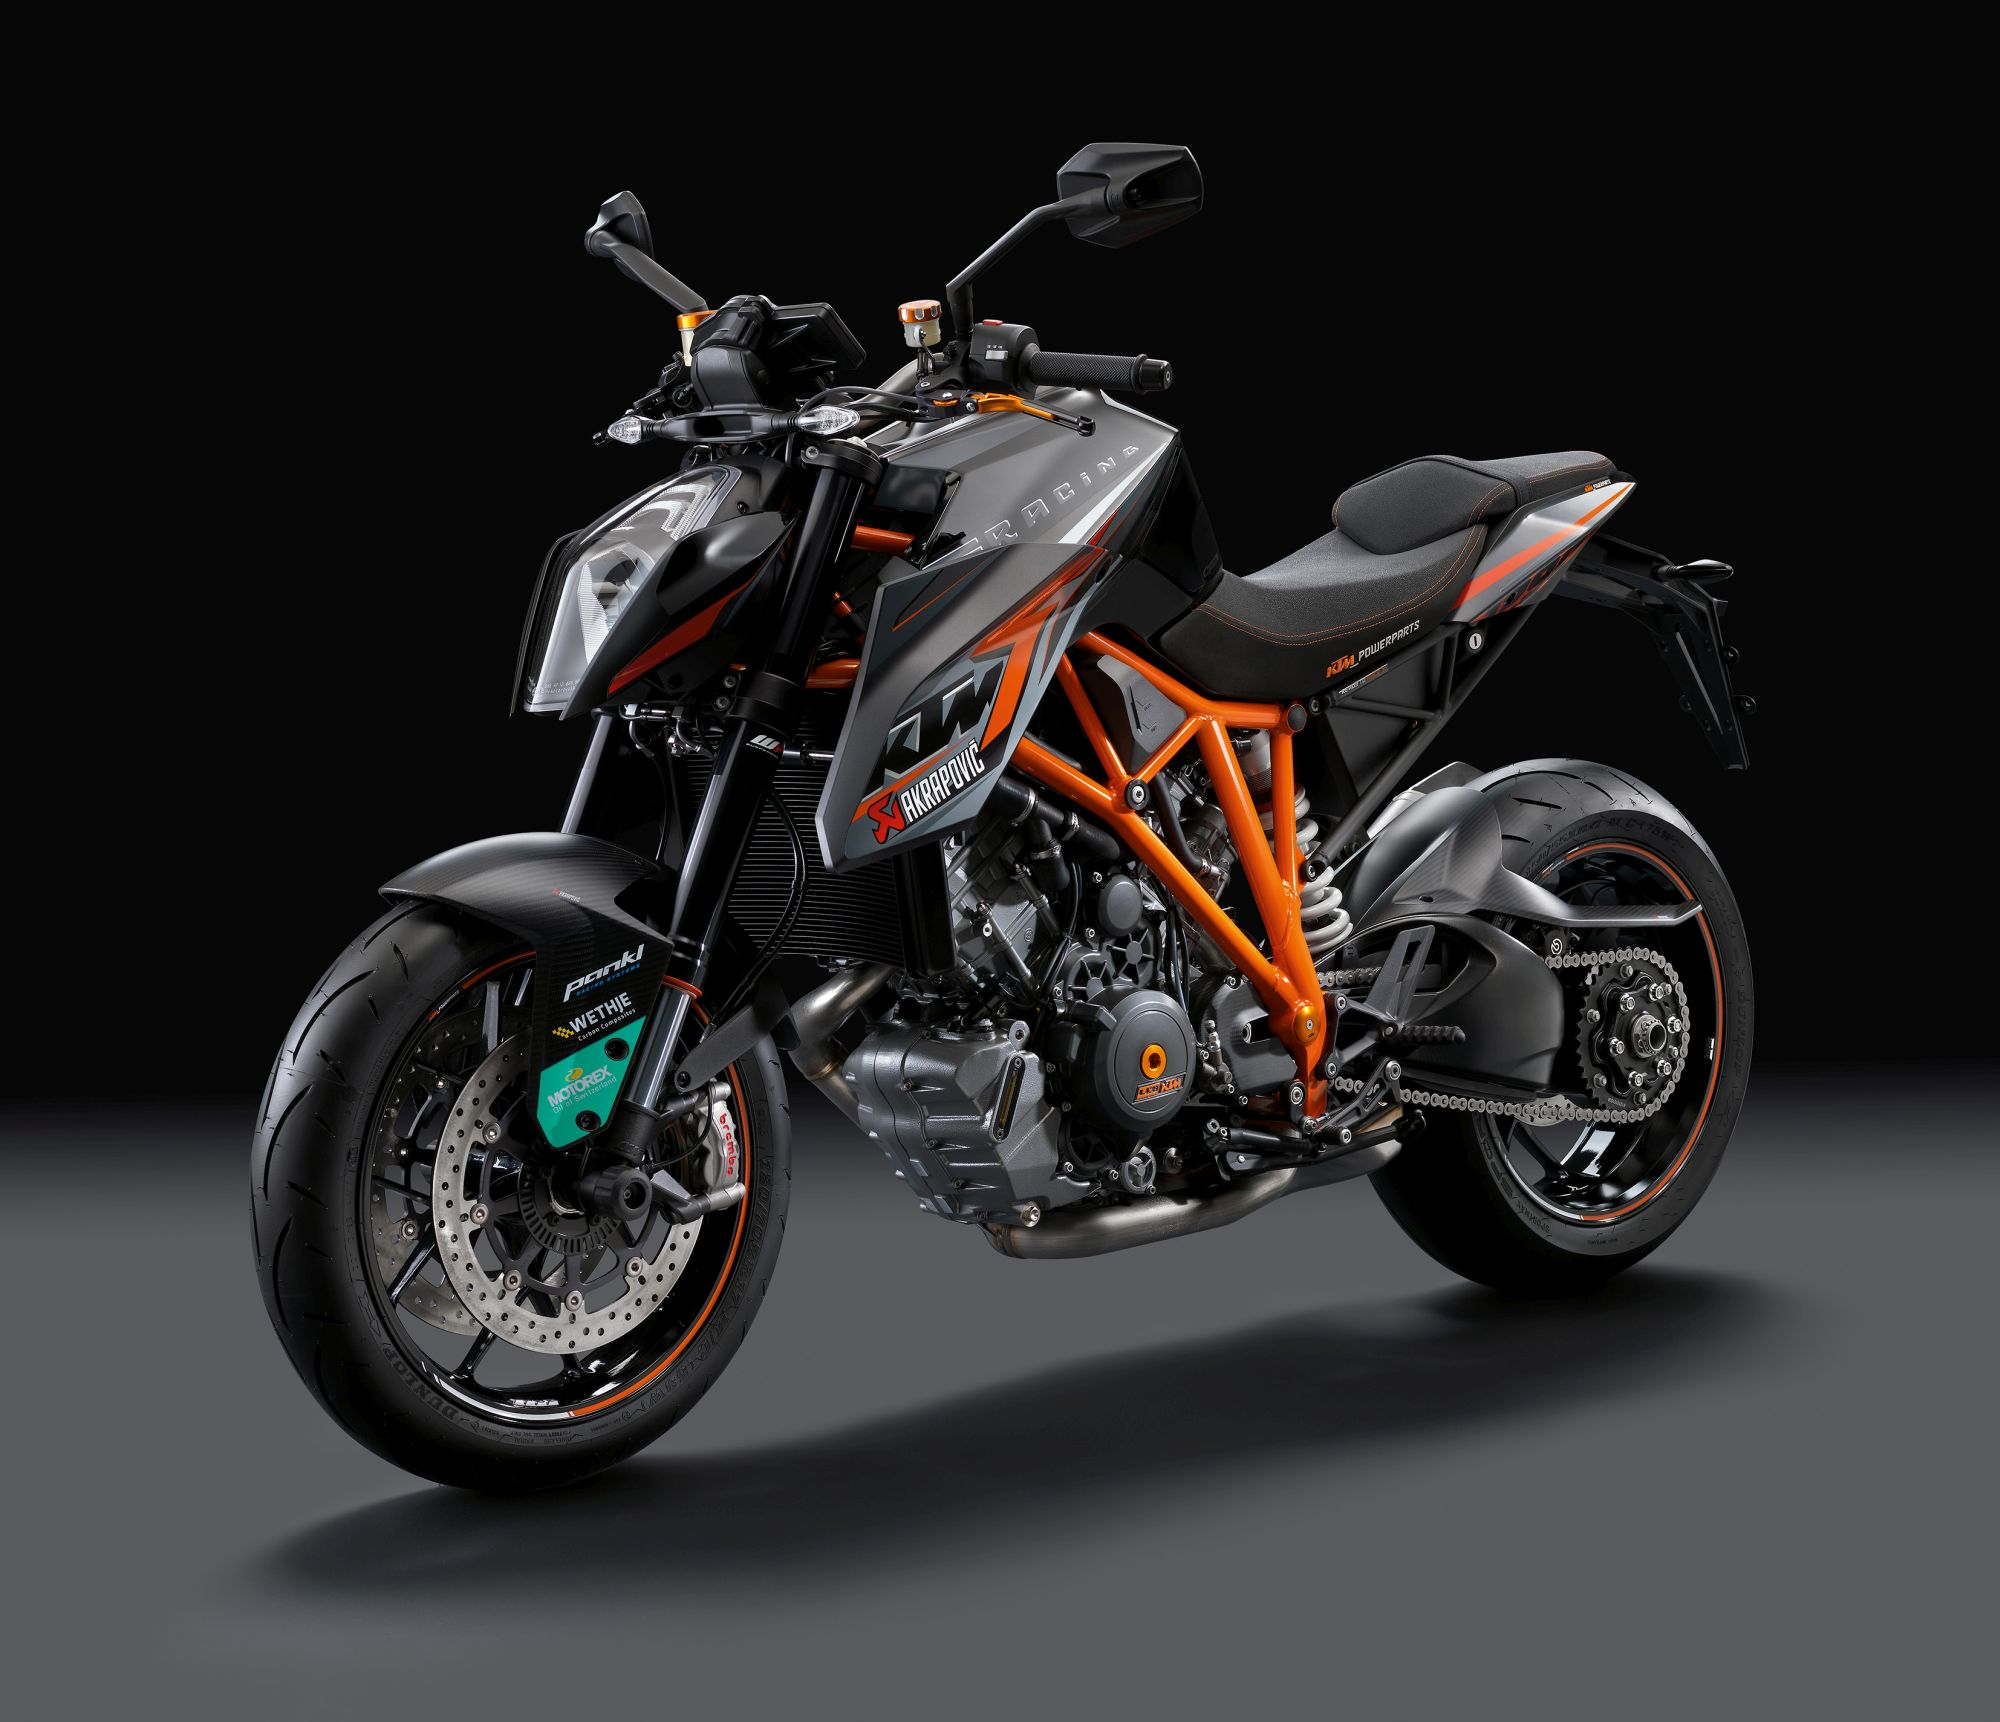 ktm 1290 super duke r bilder und technische daten. Black Bedroom Furniture Sets. Home Design Ideas